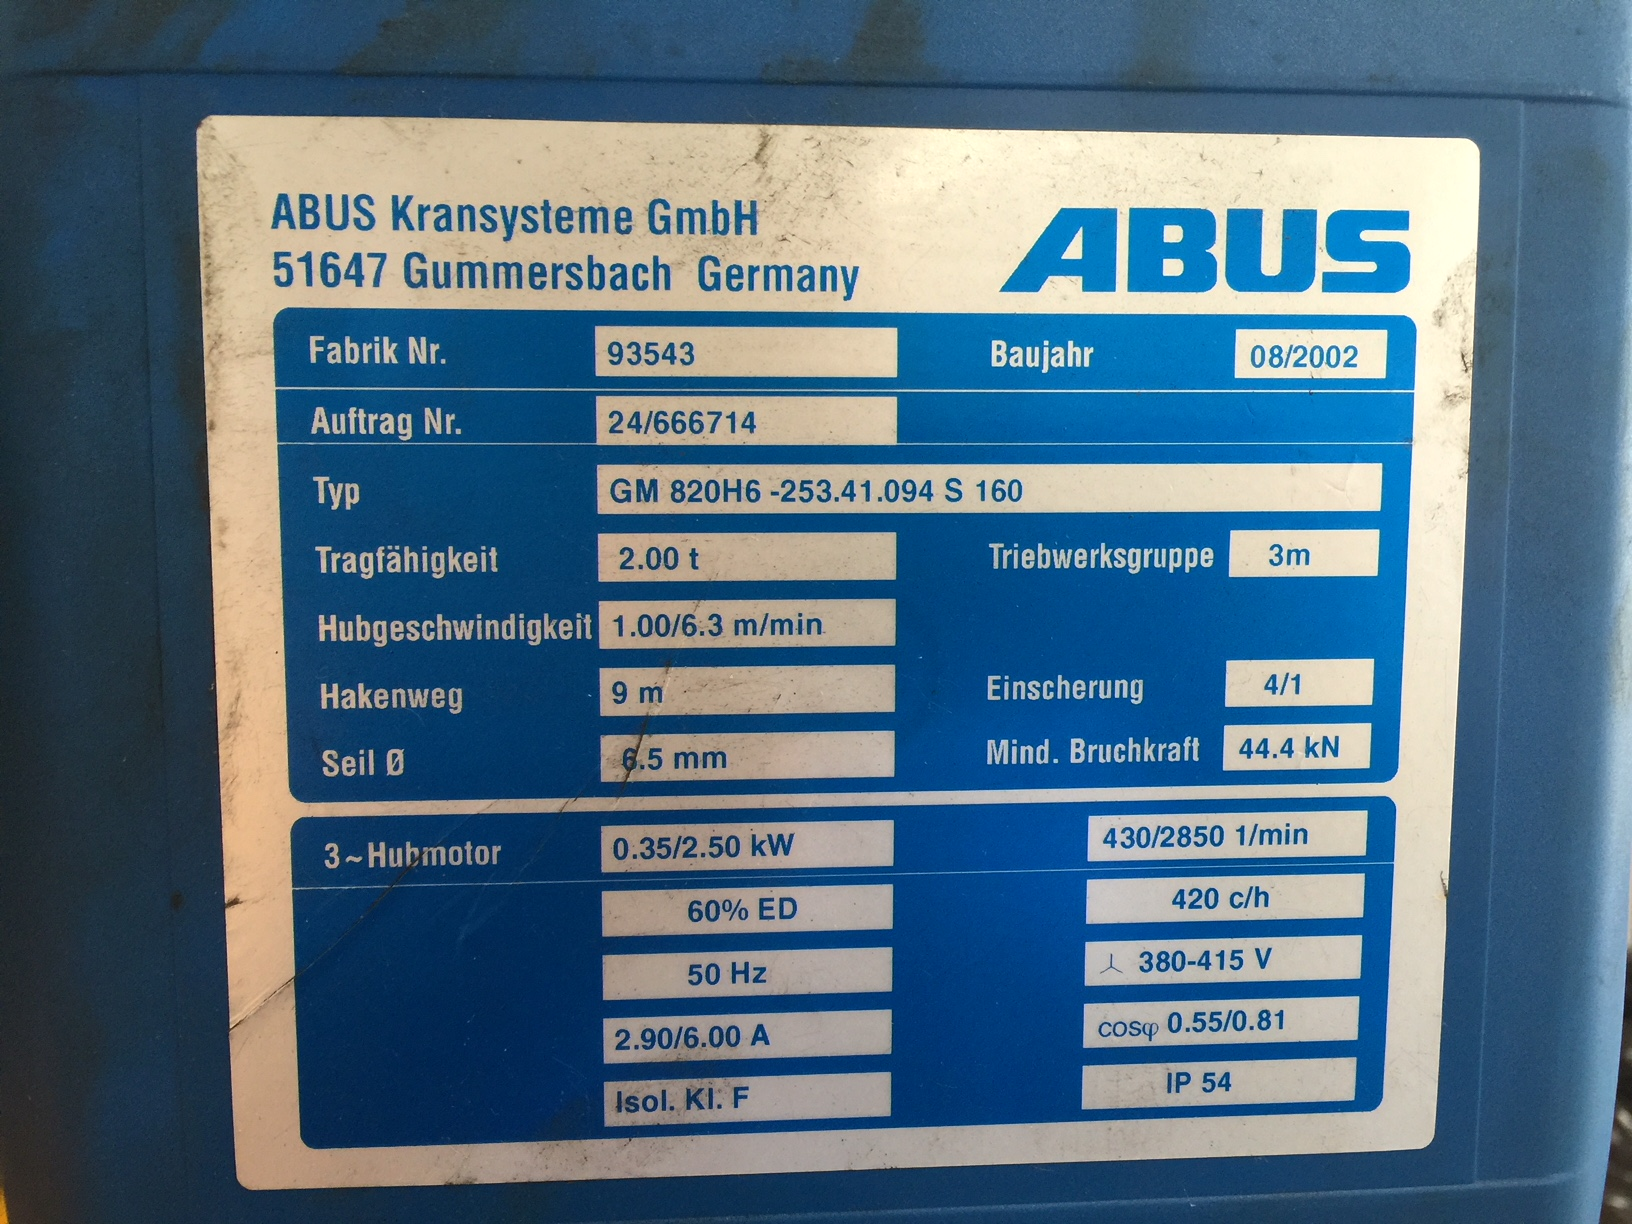 Abus hoist description plate.